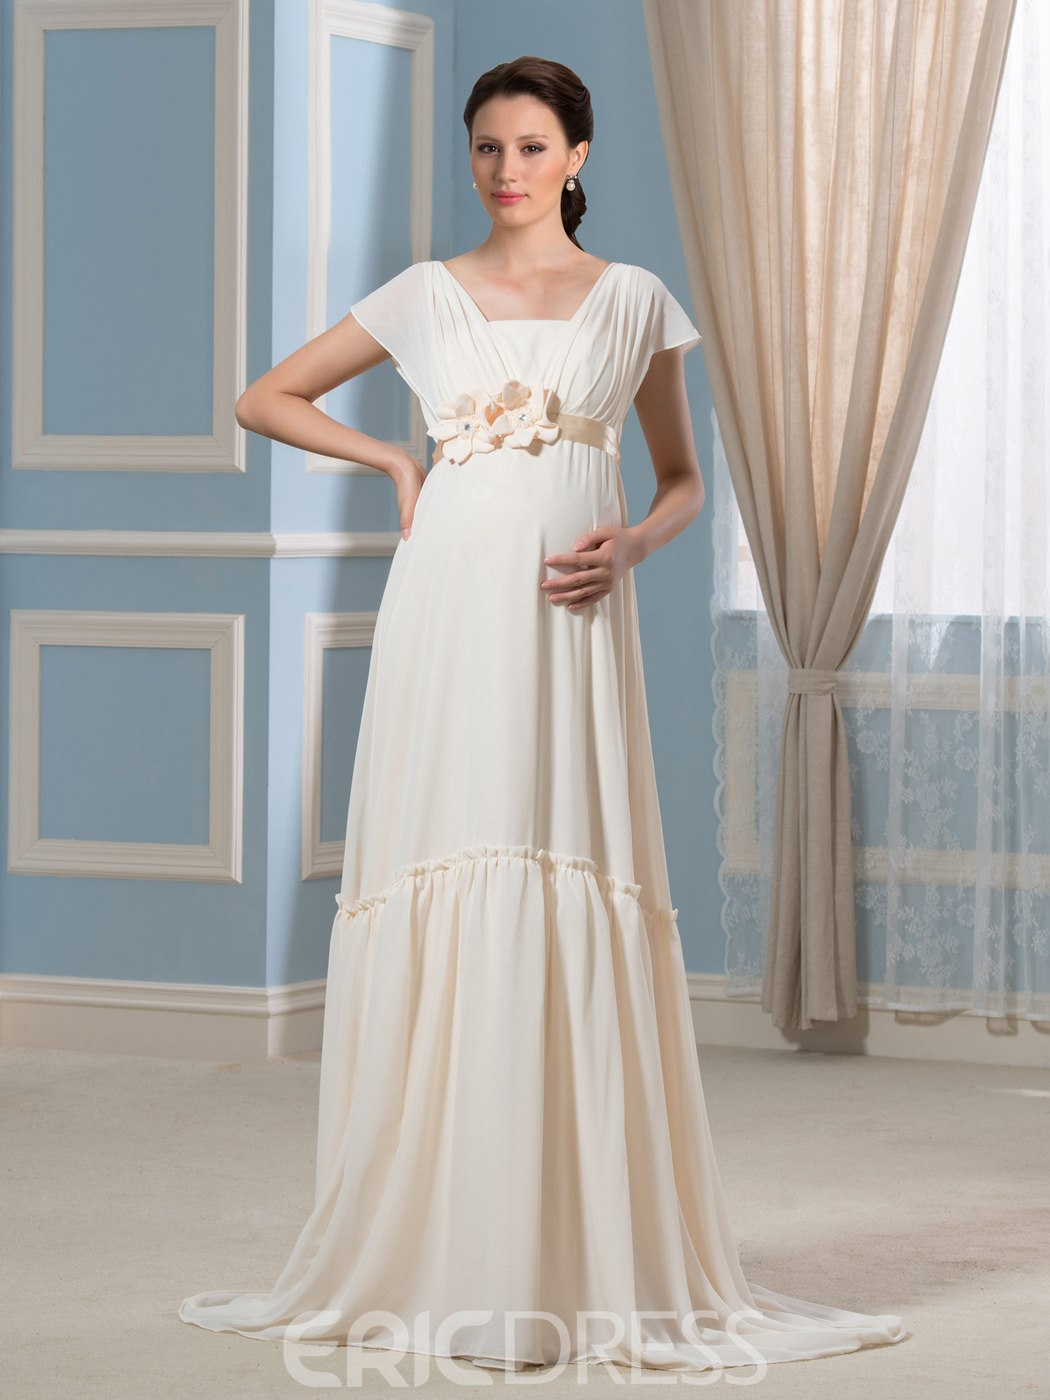 Ericdress Beautiful Flowers Maternity Wedding Dress